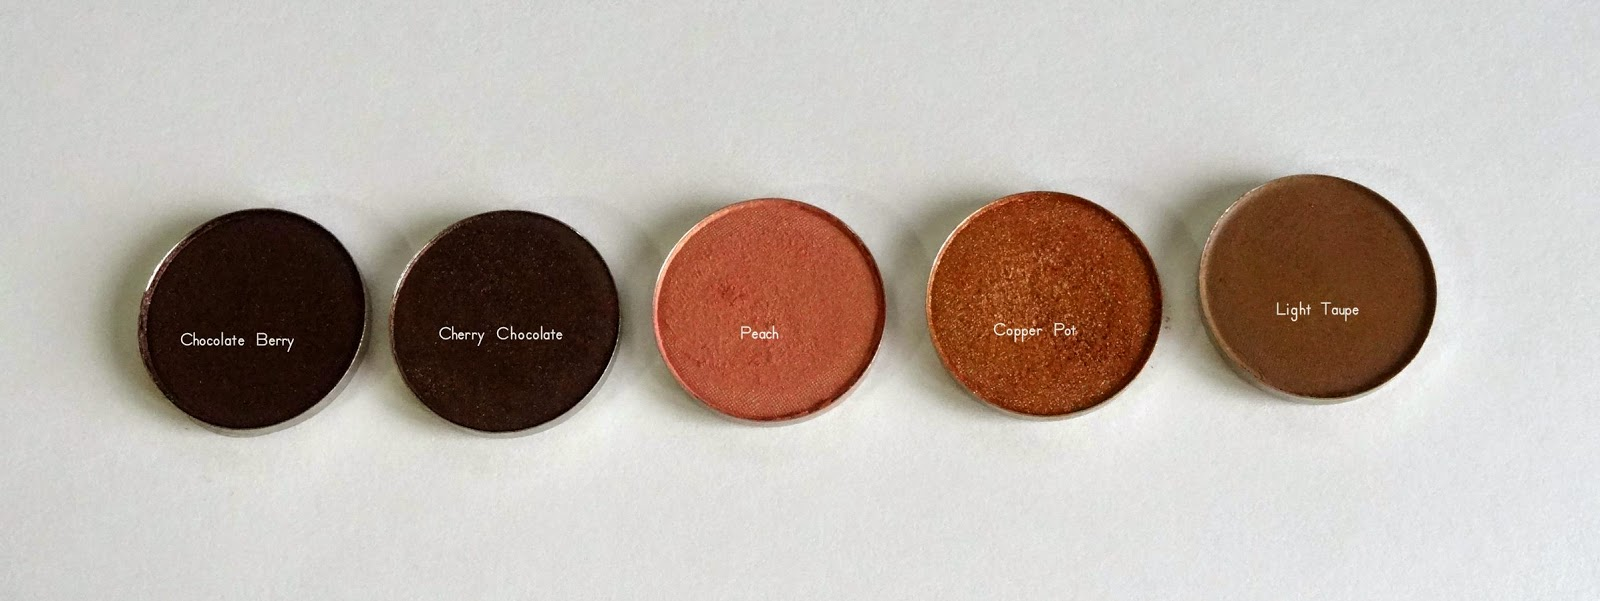 Coastal Scents Hot Pots Chocolate Berry,Cherry Chocolate,Peach,Copper Pot,Light Taupe